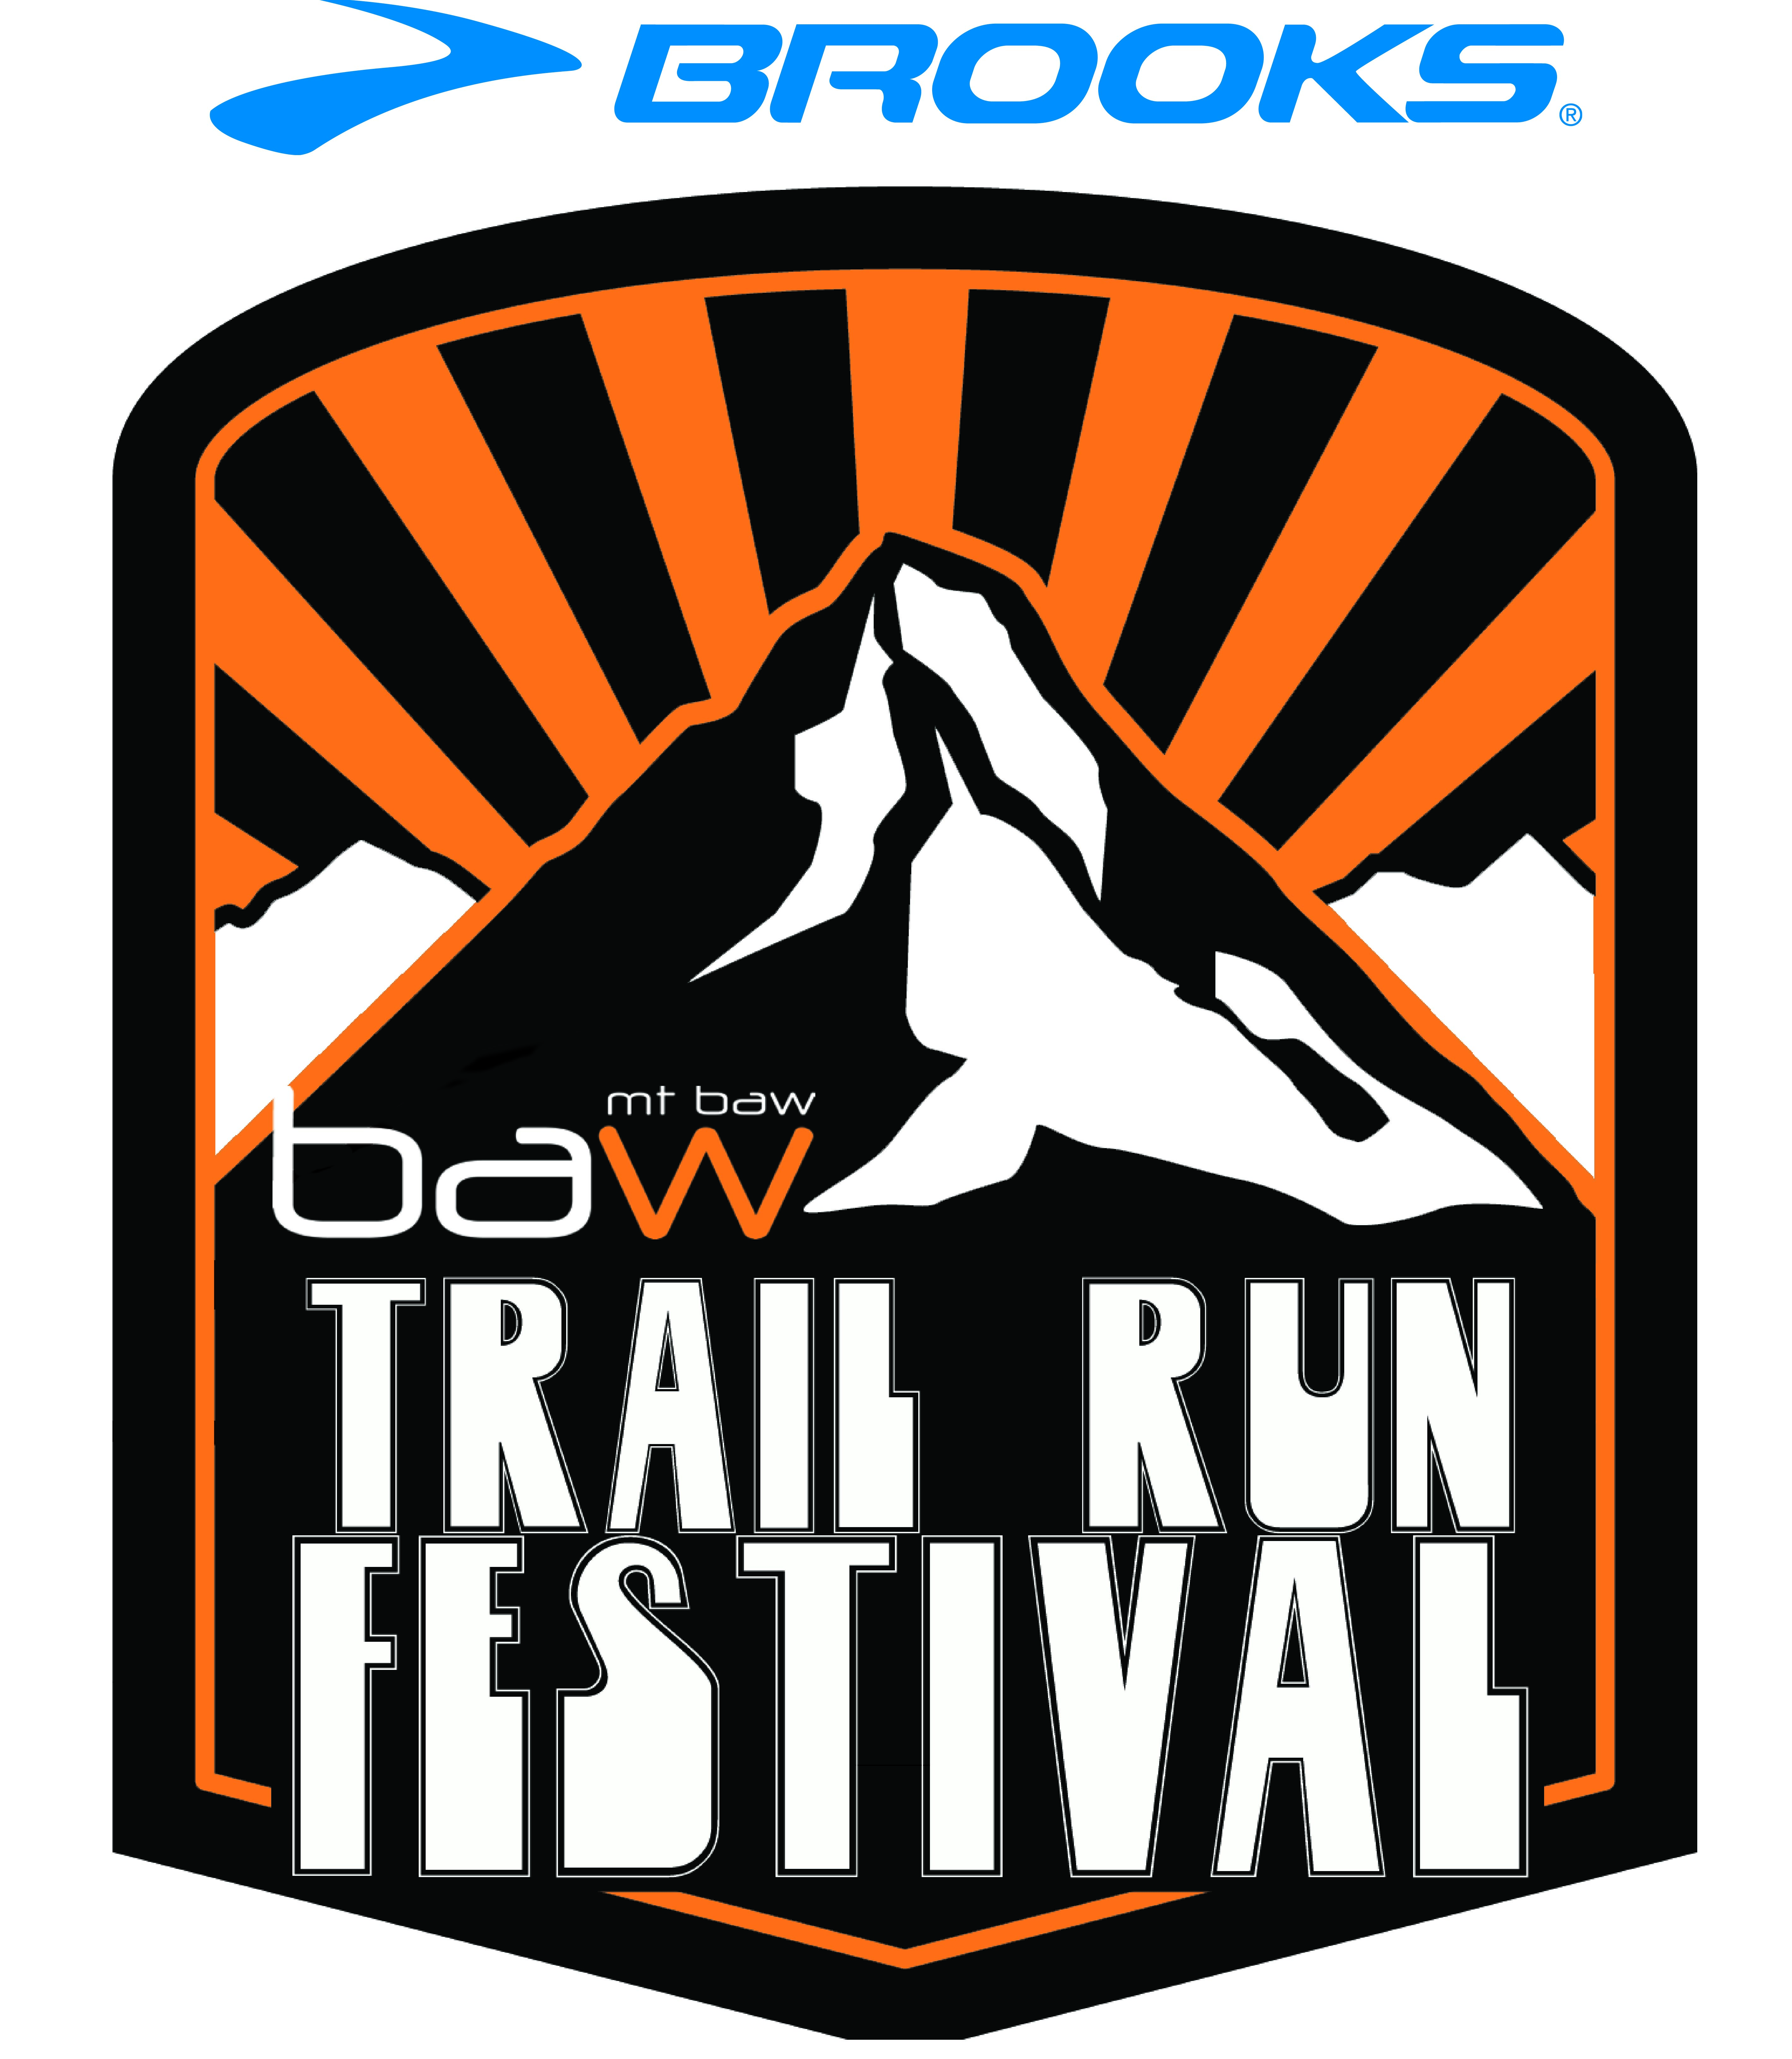 TRAIL RUN FEST _ LOGO _ SHIELD ONLY